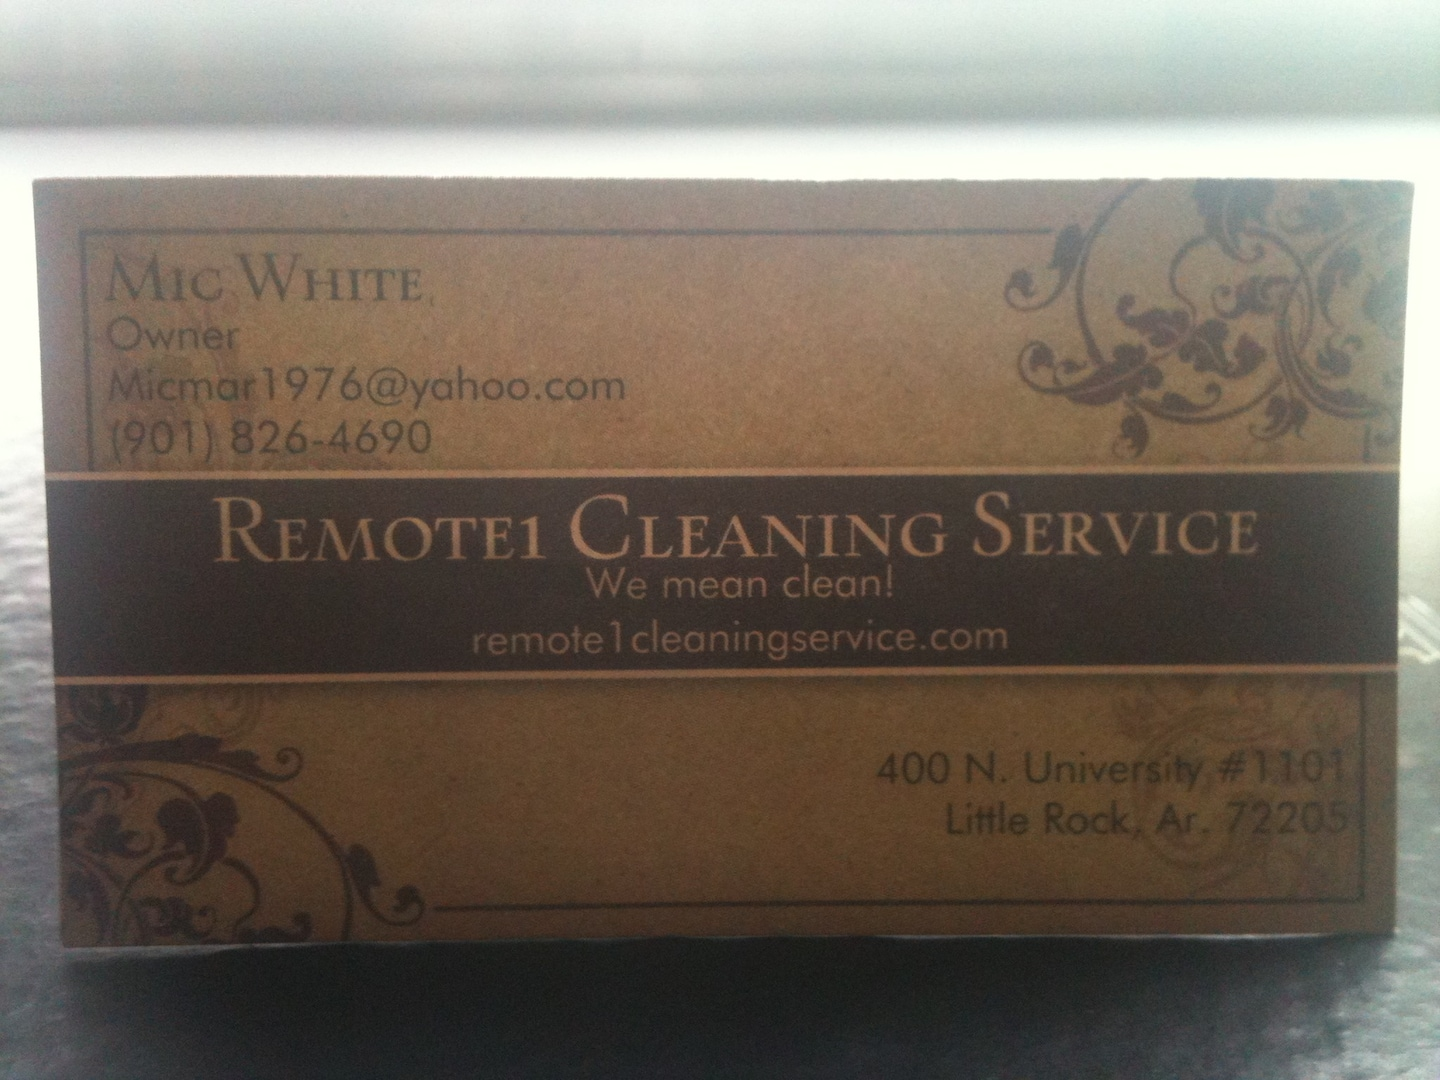 Remote 1 Cleaning Service